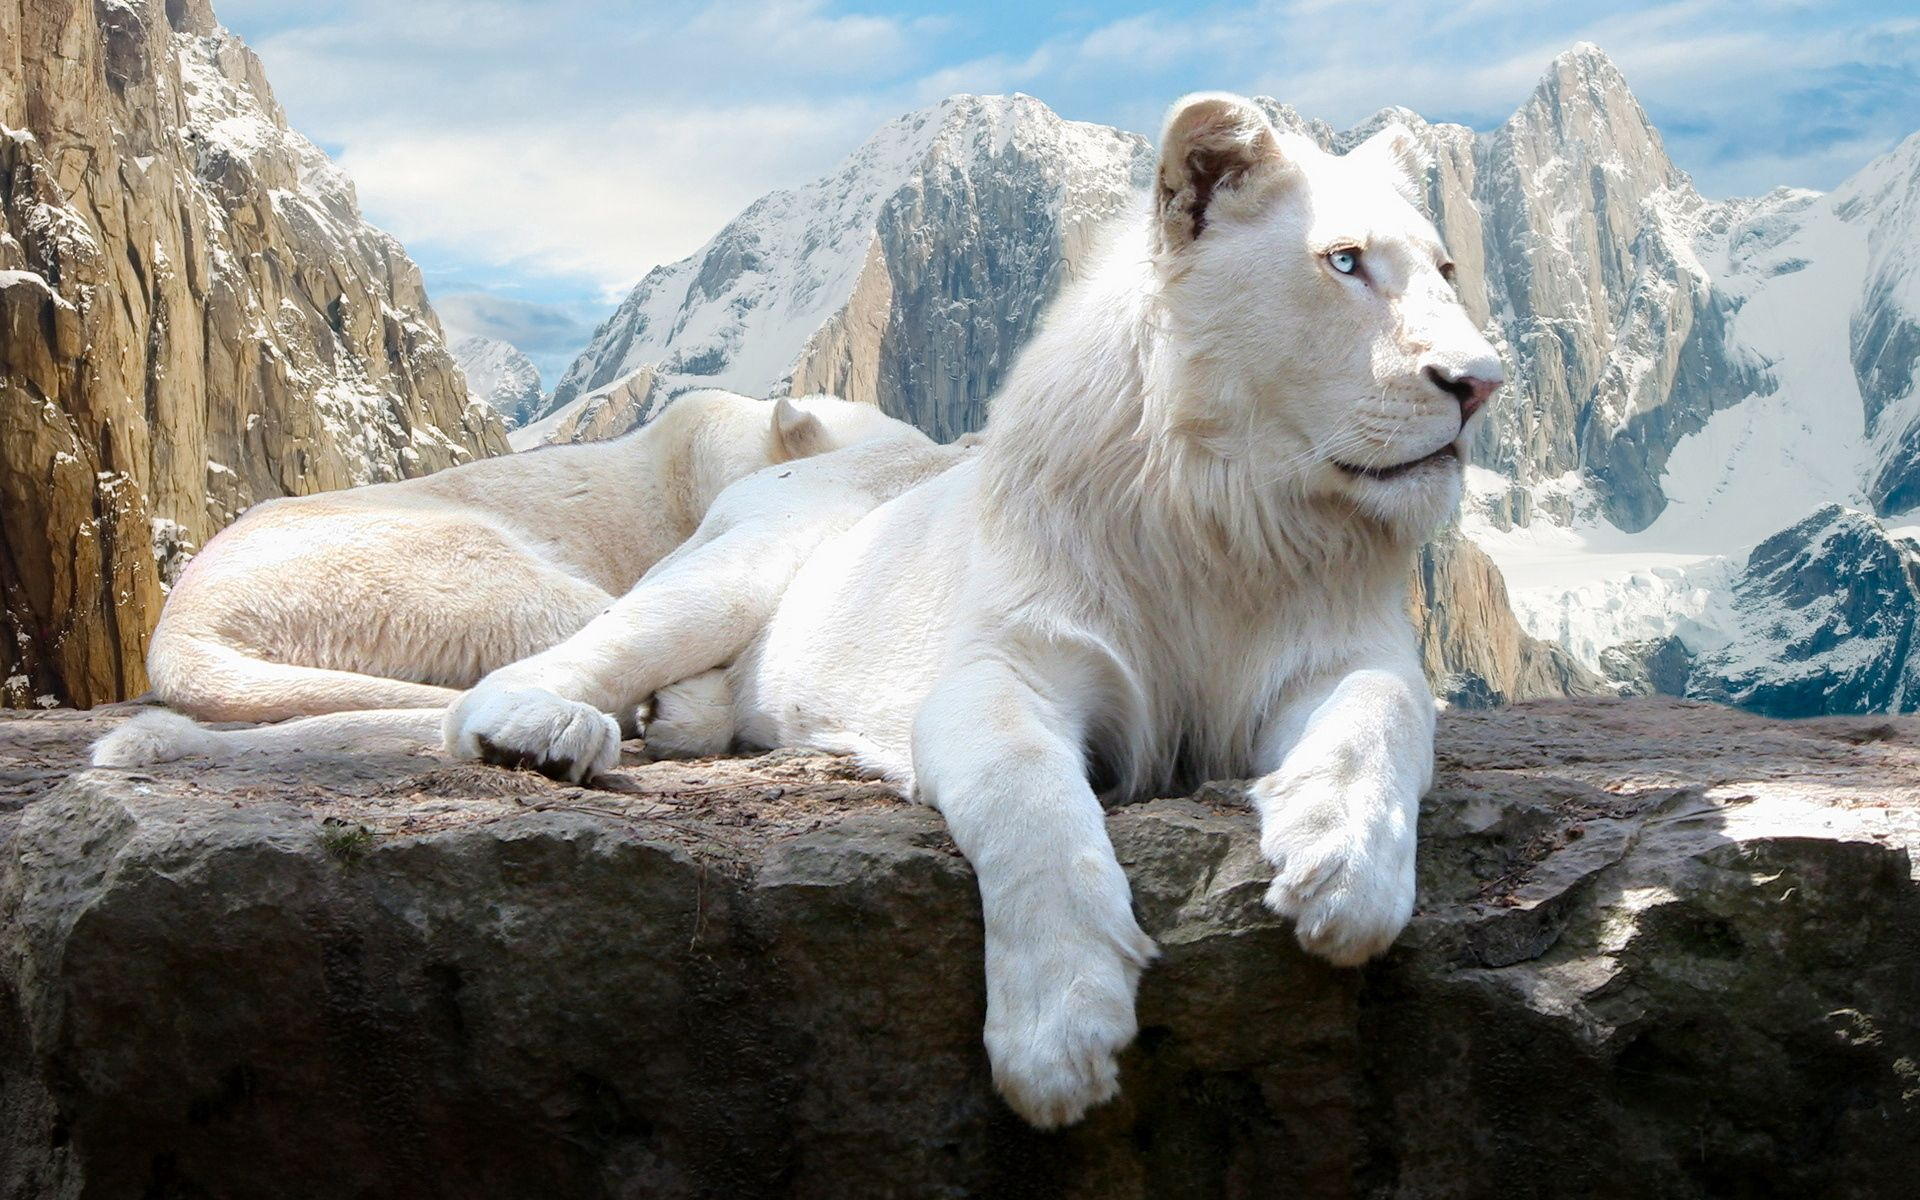 73012 download wallpaper Animals, Lion, Rock, Albino, To Lie Down, Lie, Mountains screensavers and pictures for free